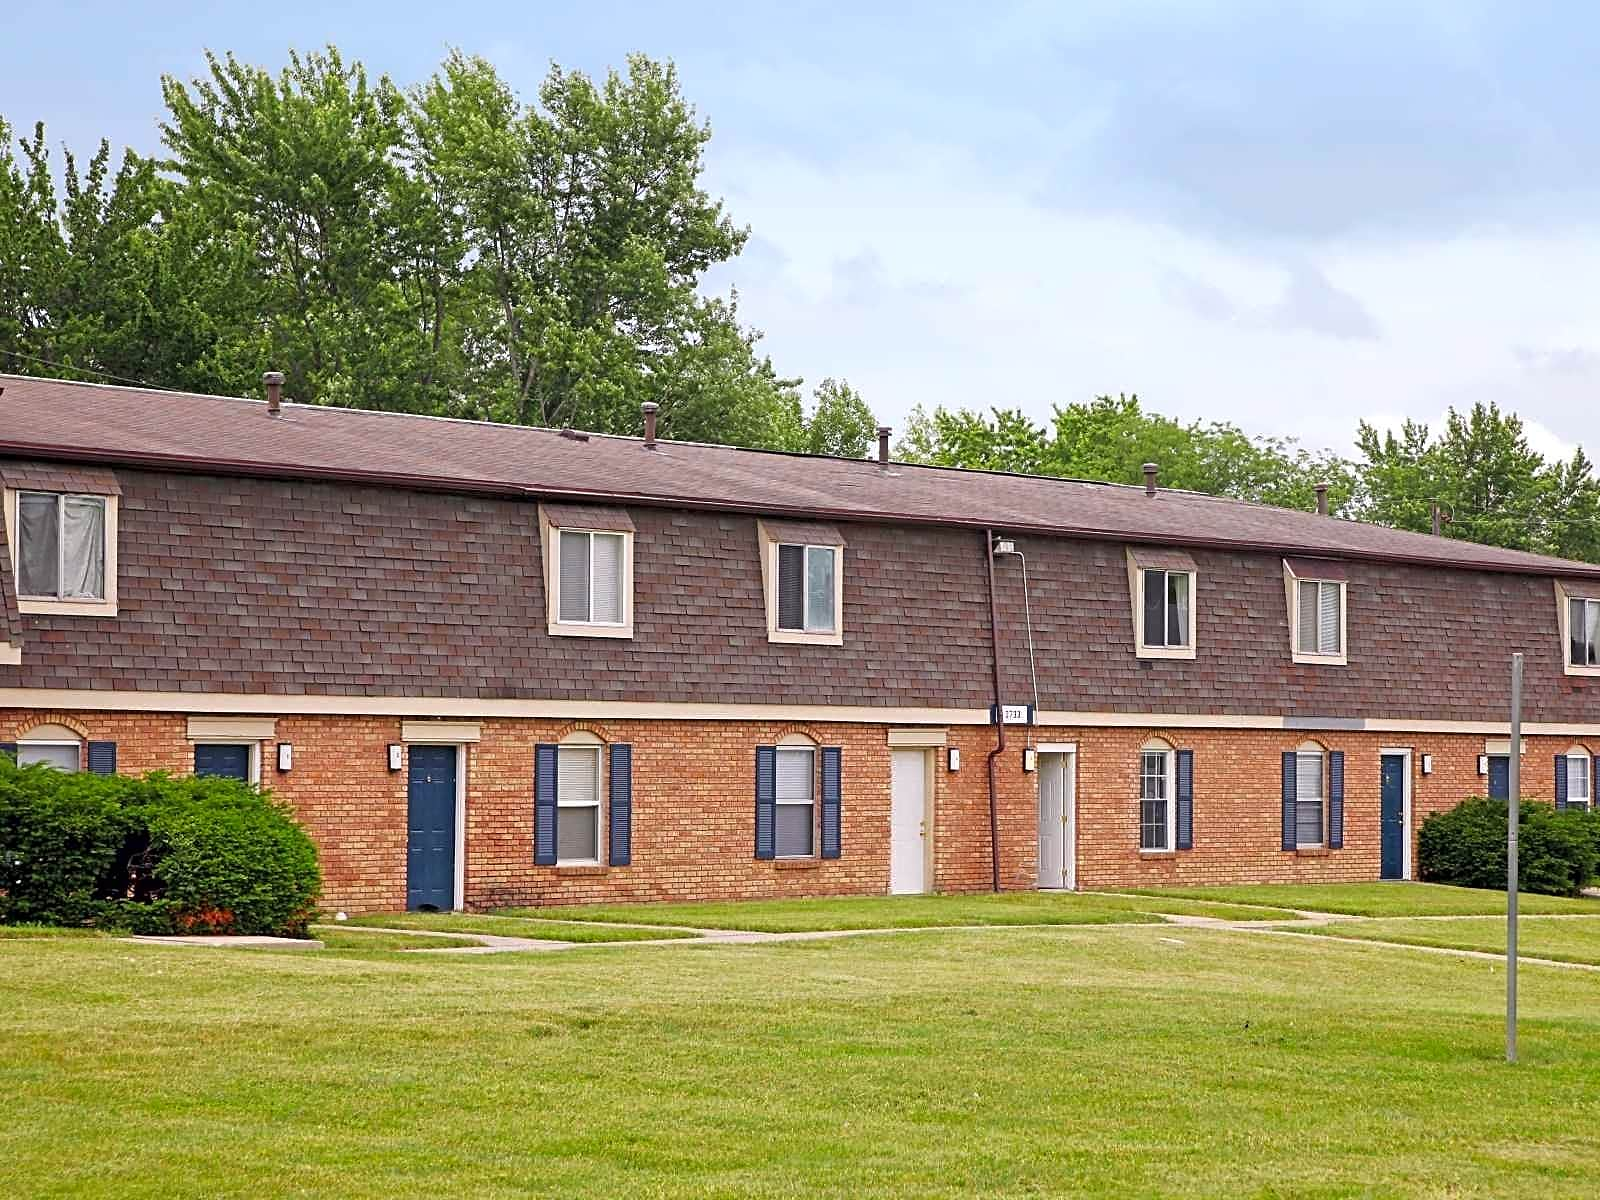 Photo: Fort Wayne Apartment for Rent - $719.00 / month; 3 Bd & 1 Ba